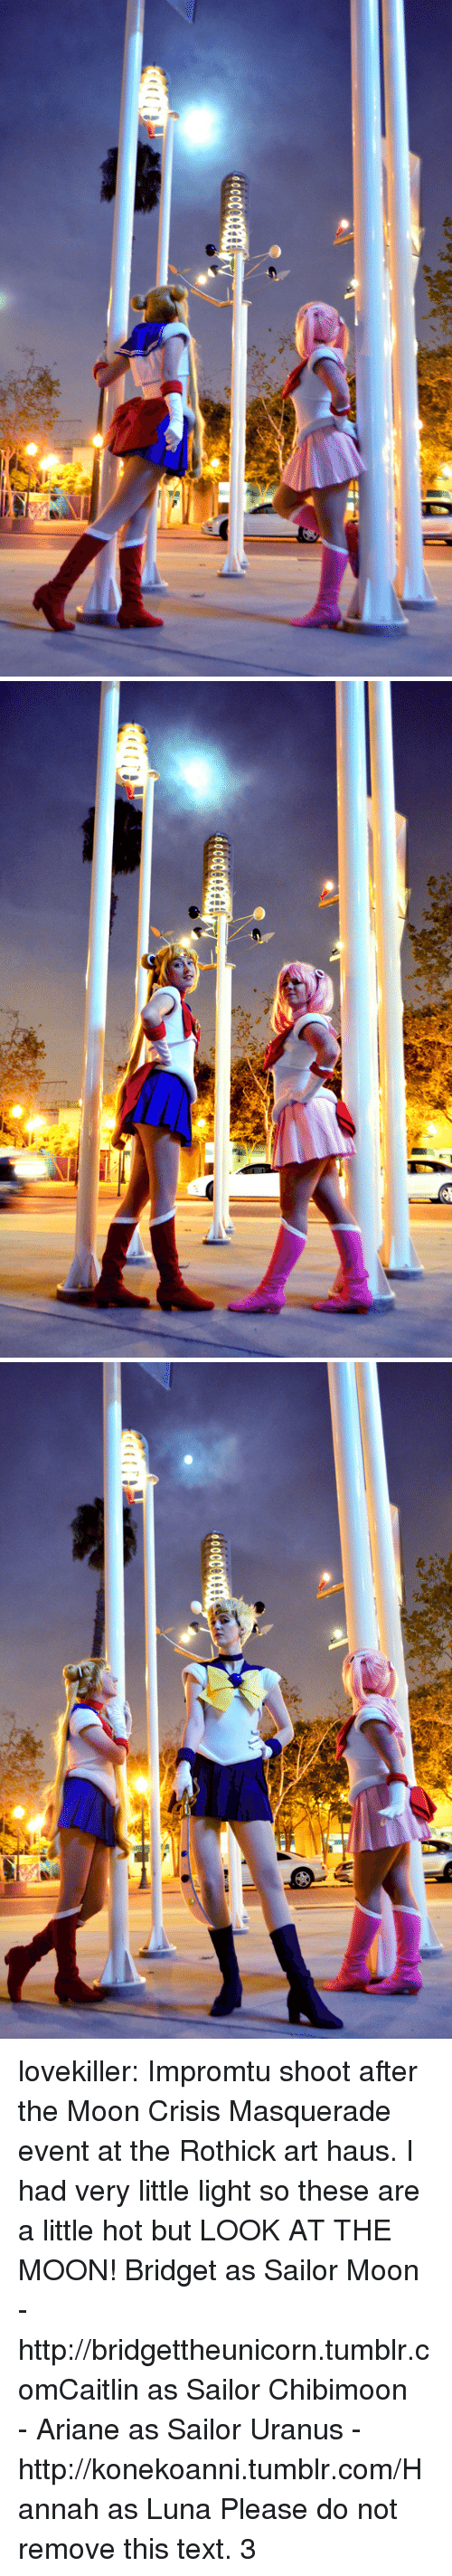 Sailor Moon, Target, and Tumblr: lovekiller:  Impromtu shoot after the Moon Crisis Masquerade event at the Rothick art haus. I had very little light so these are a little hot but LOOK AT THE MOON! Bridget as Sailor Moon - http://bridgettheunicorn.tumblr.comCaitlin as Sailor Chibimoon - Ariane as Sailor Uranus - http://konekoanni.tumblr.com/Hannah as Luna   Please do not remove this text. 3